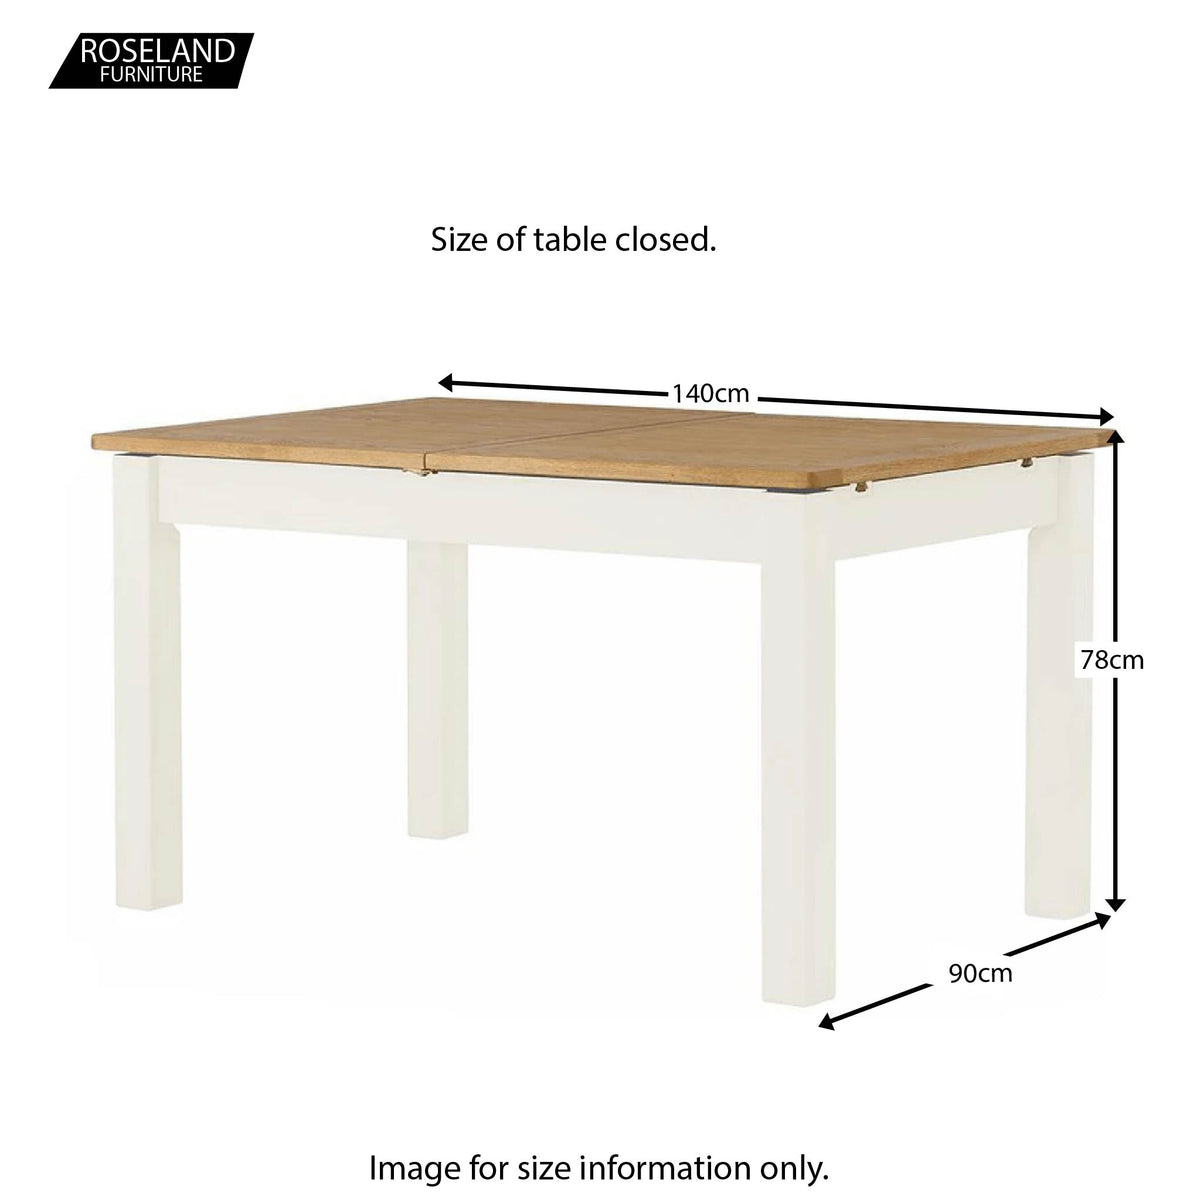 Padstow White Extending Dining Table - Size Guide of Table Closed